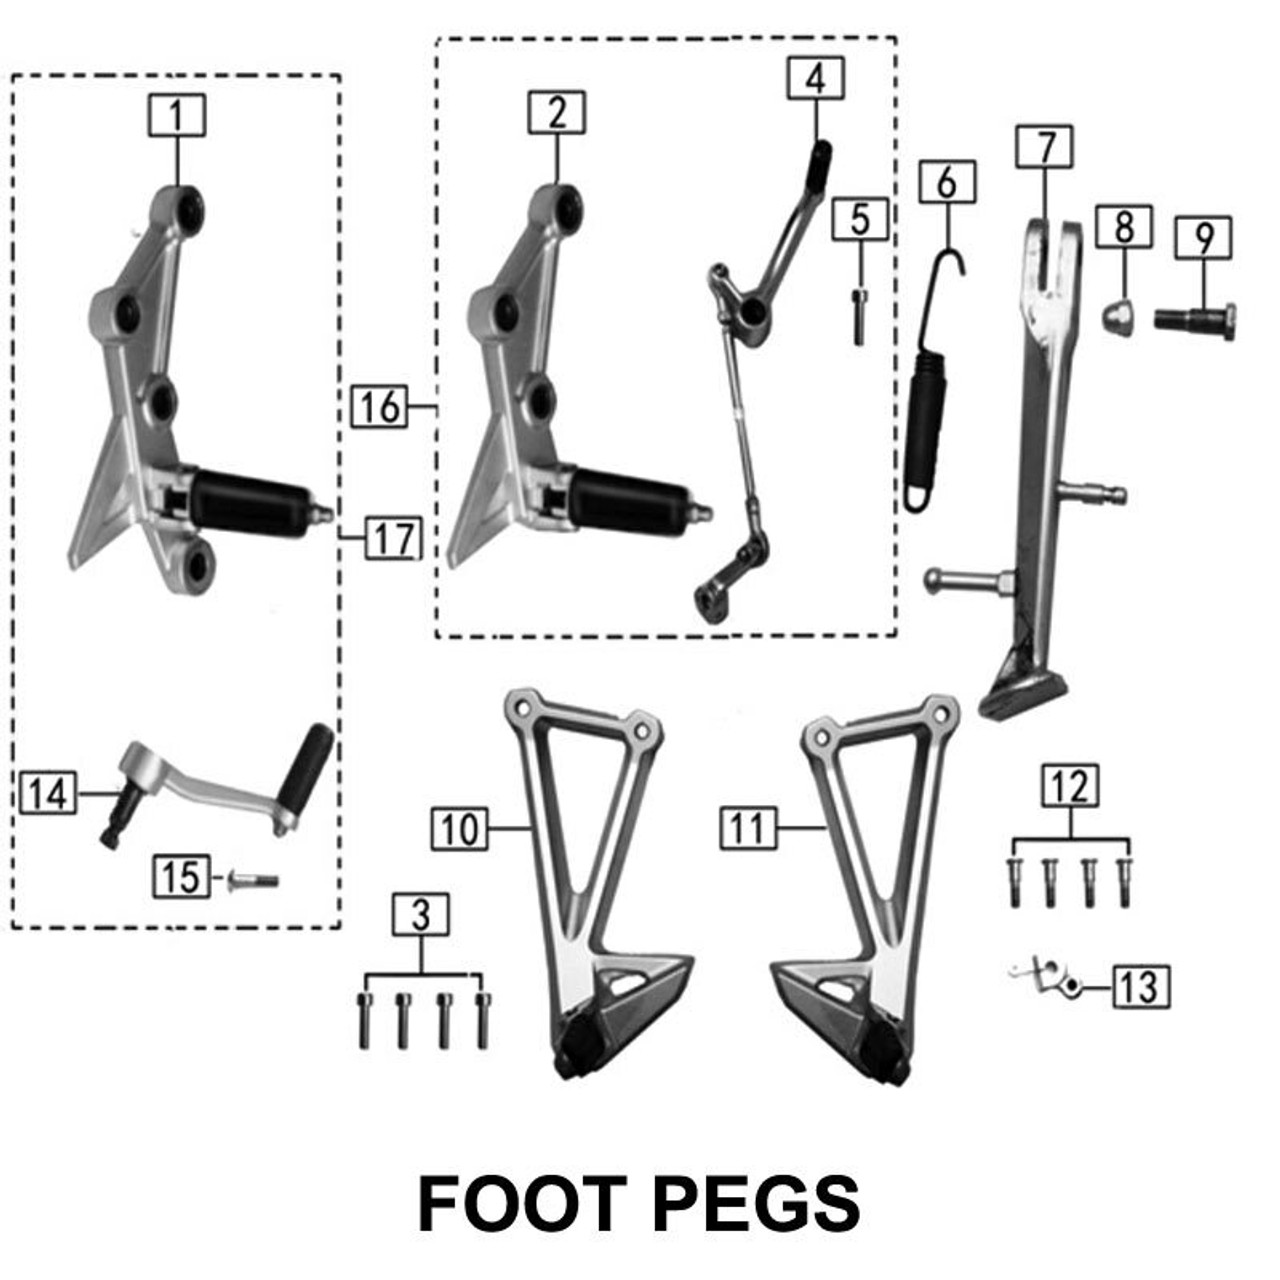 FOOTPEGS AND KICK STAND